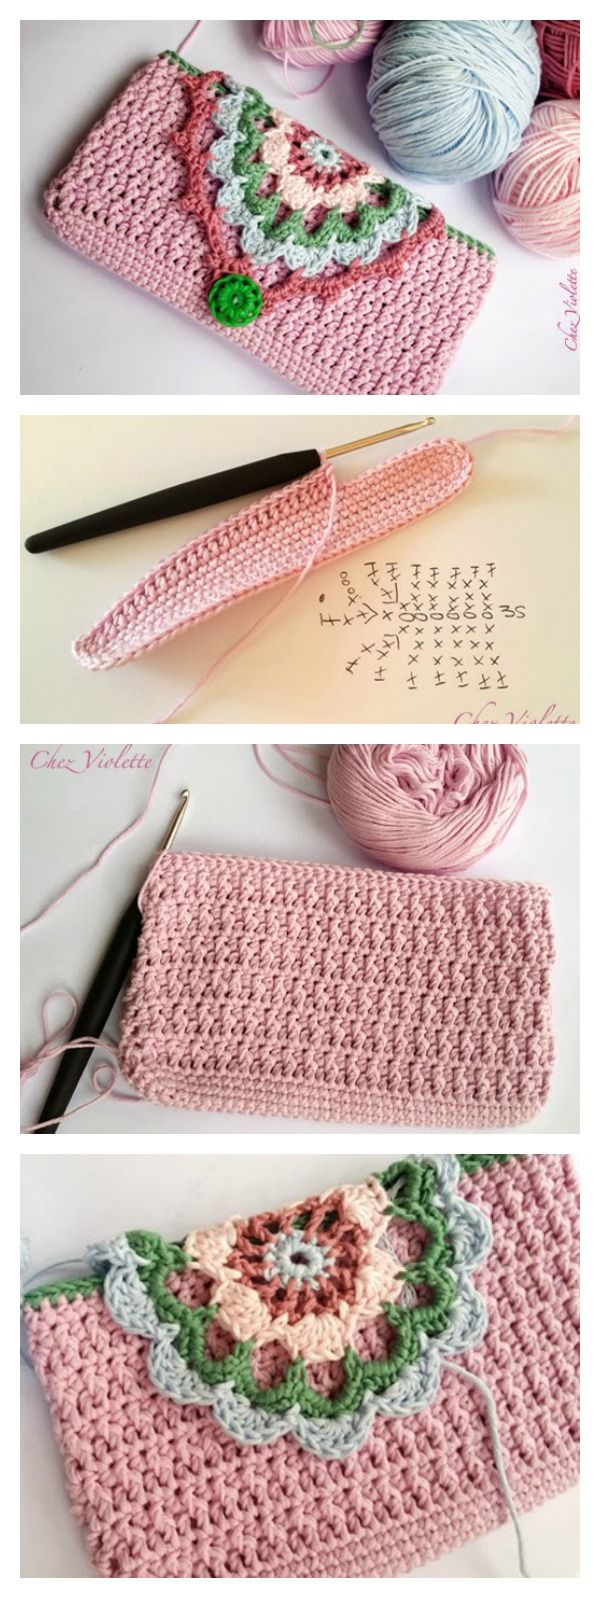 Fancy Phone Case Free Crochet Pattern                                                                                                                                                                                 More